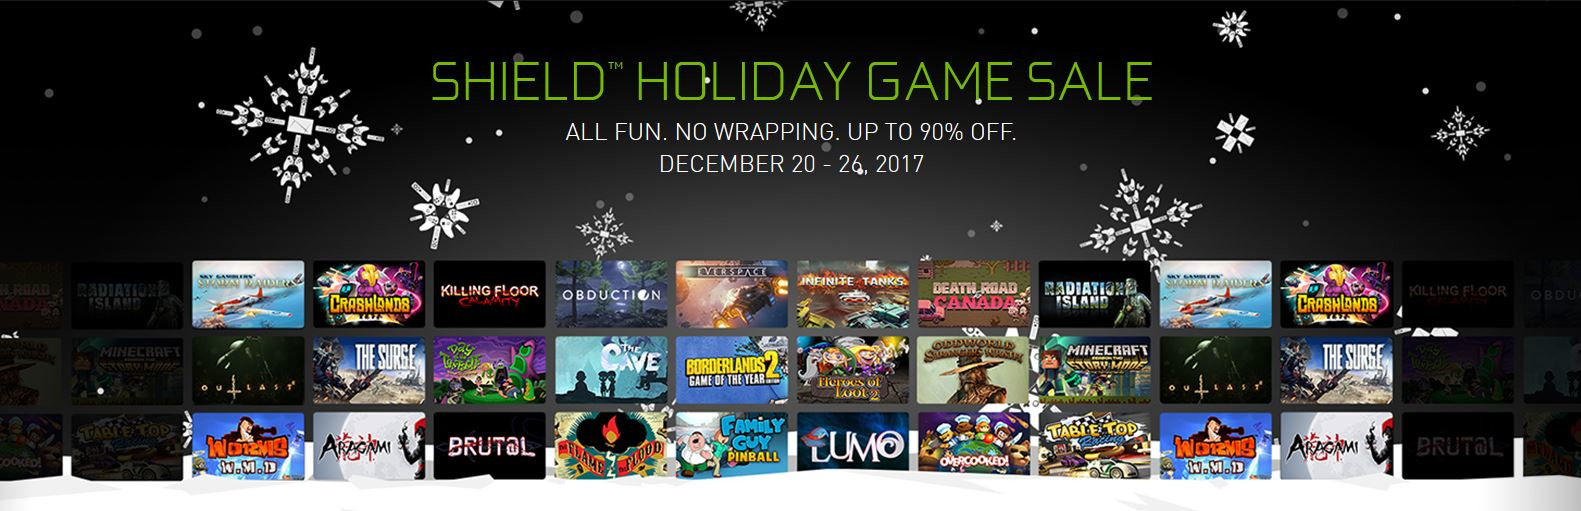 NVIDIA Shield Holiday Game Sale: Save Up to 90% on Games